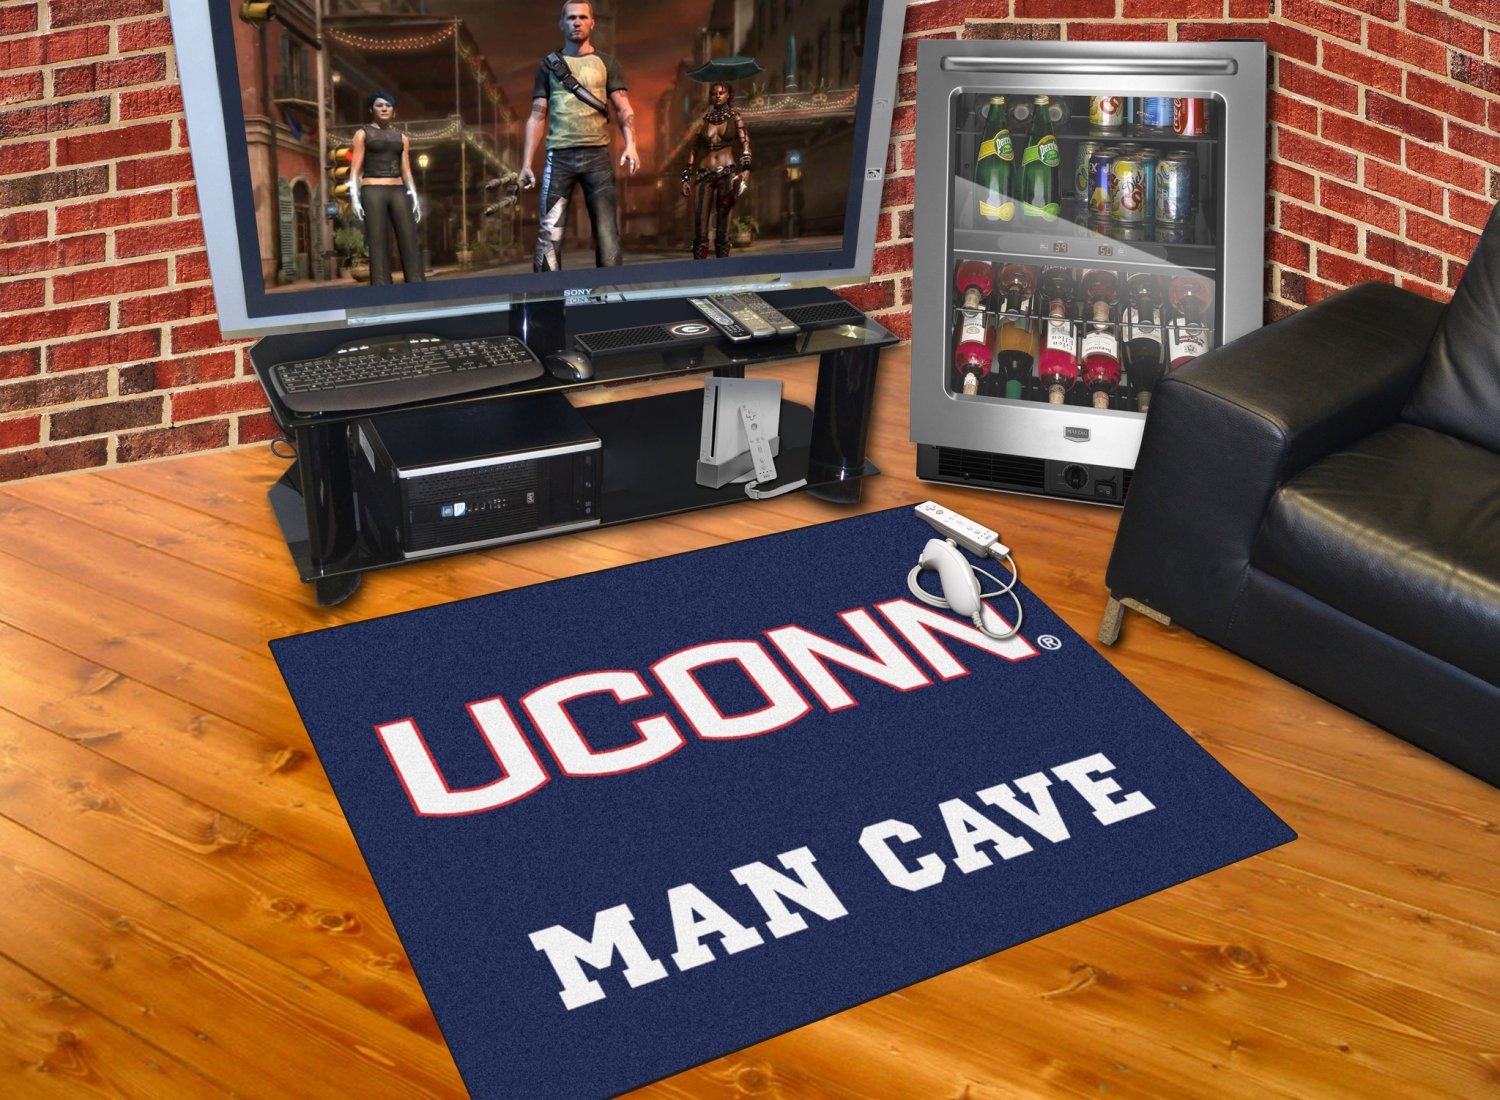 Man Cave Store Tanger Outlets : University of connecticut man cave all star mat